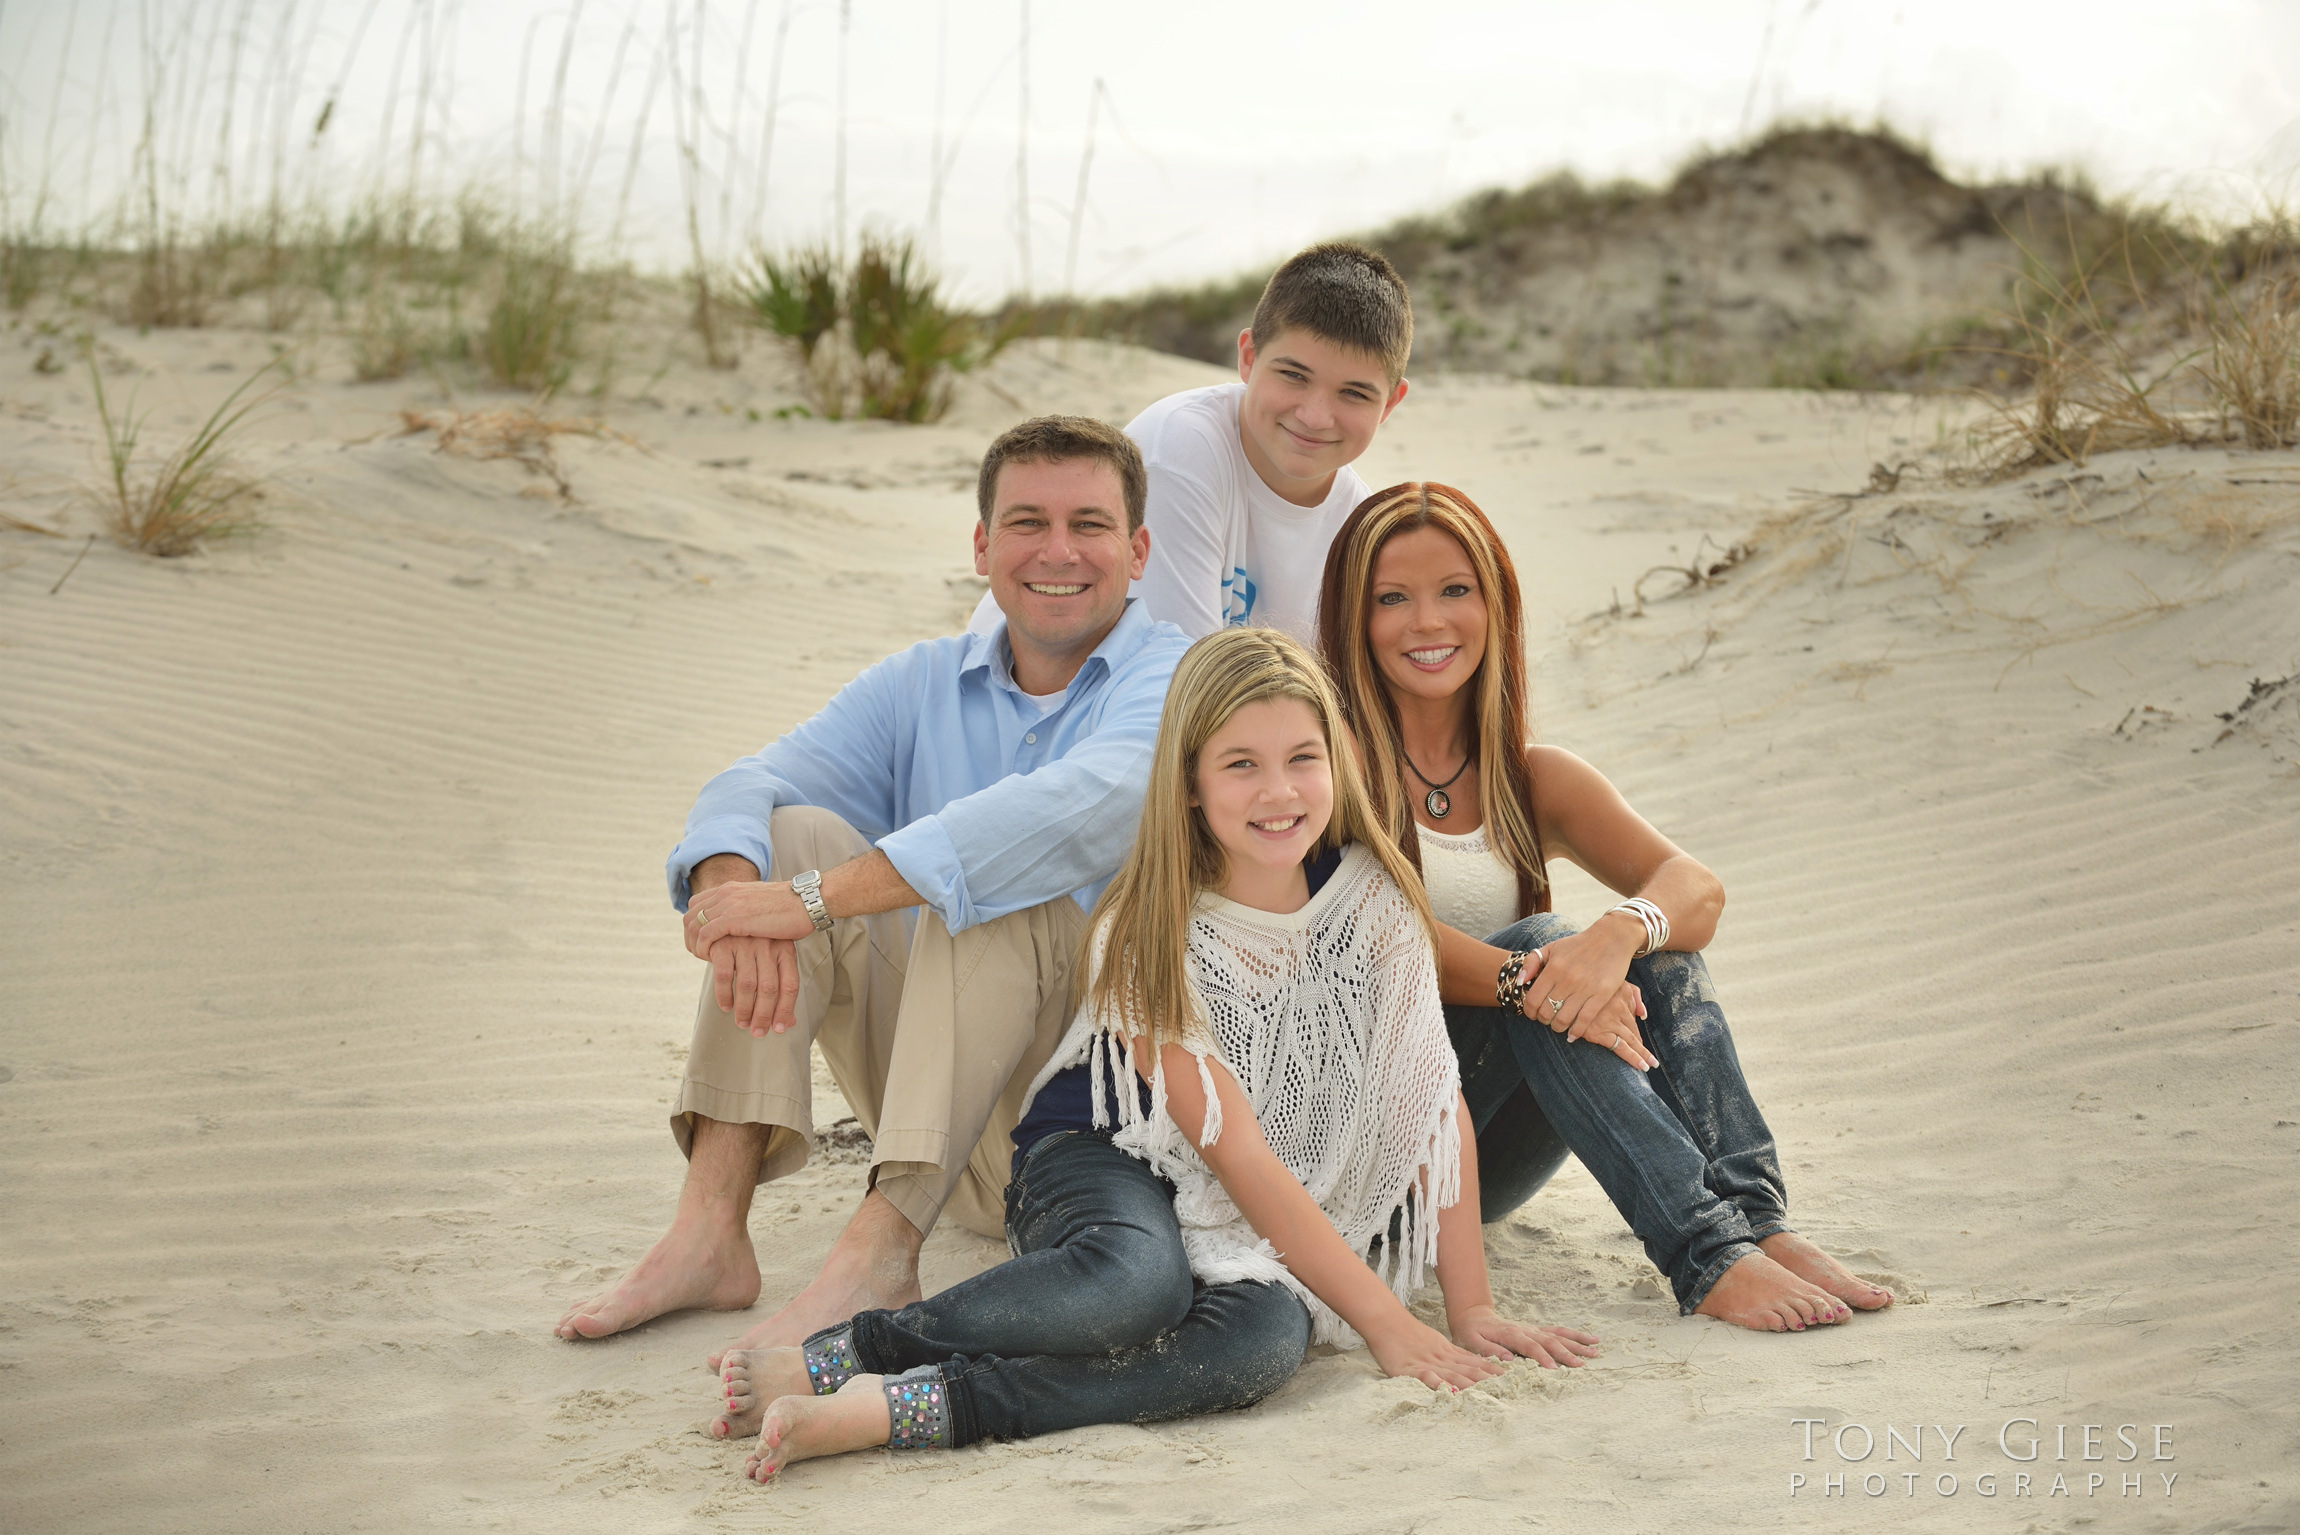 Family beach portraits by Tony Giese Photography